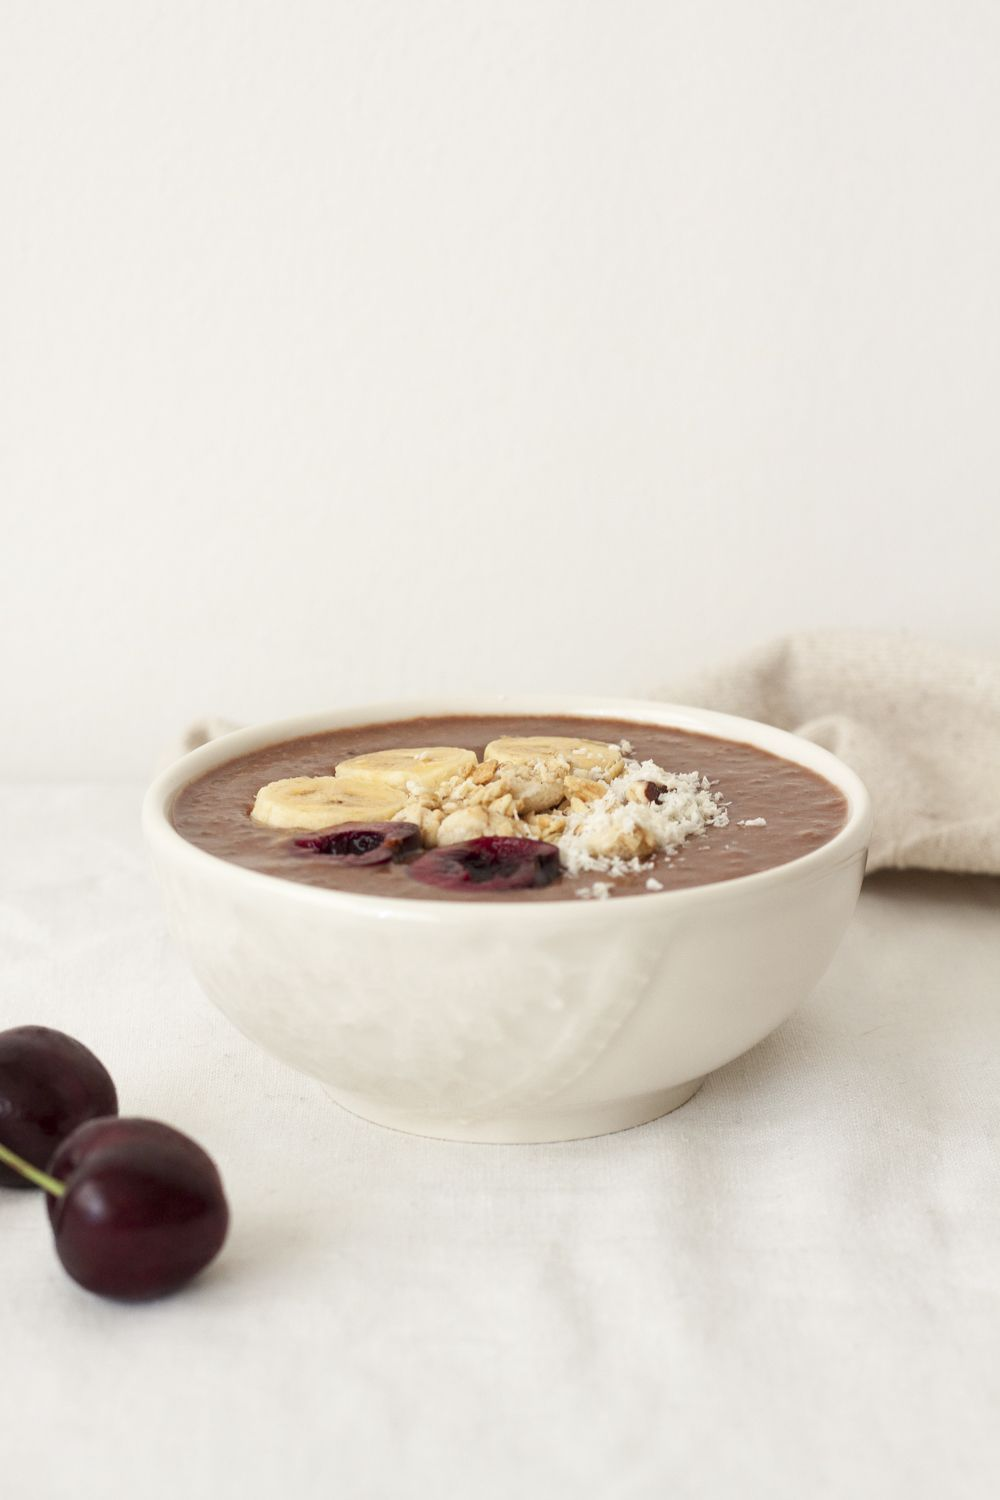 Smoothie bowl de chocolate y canela | My wholistic life